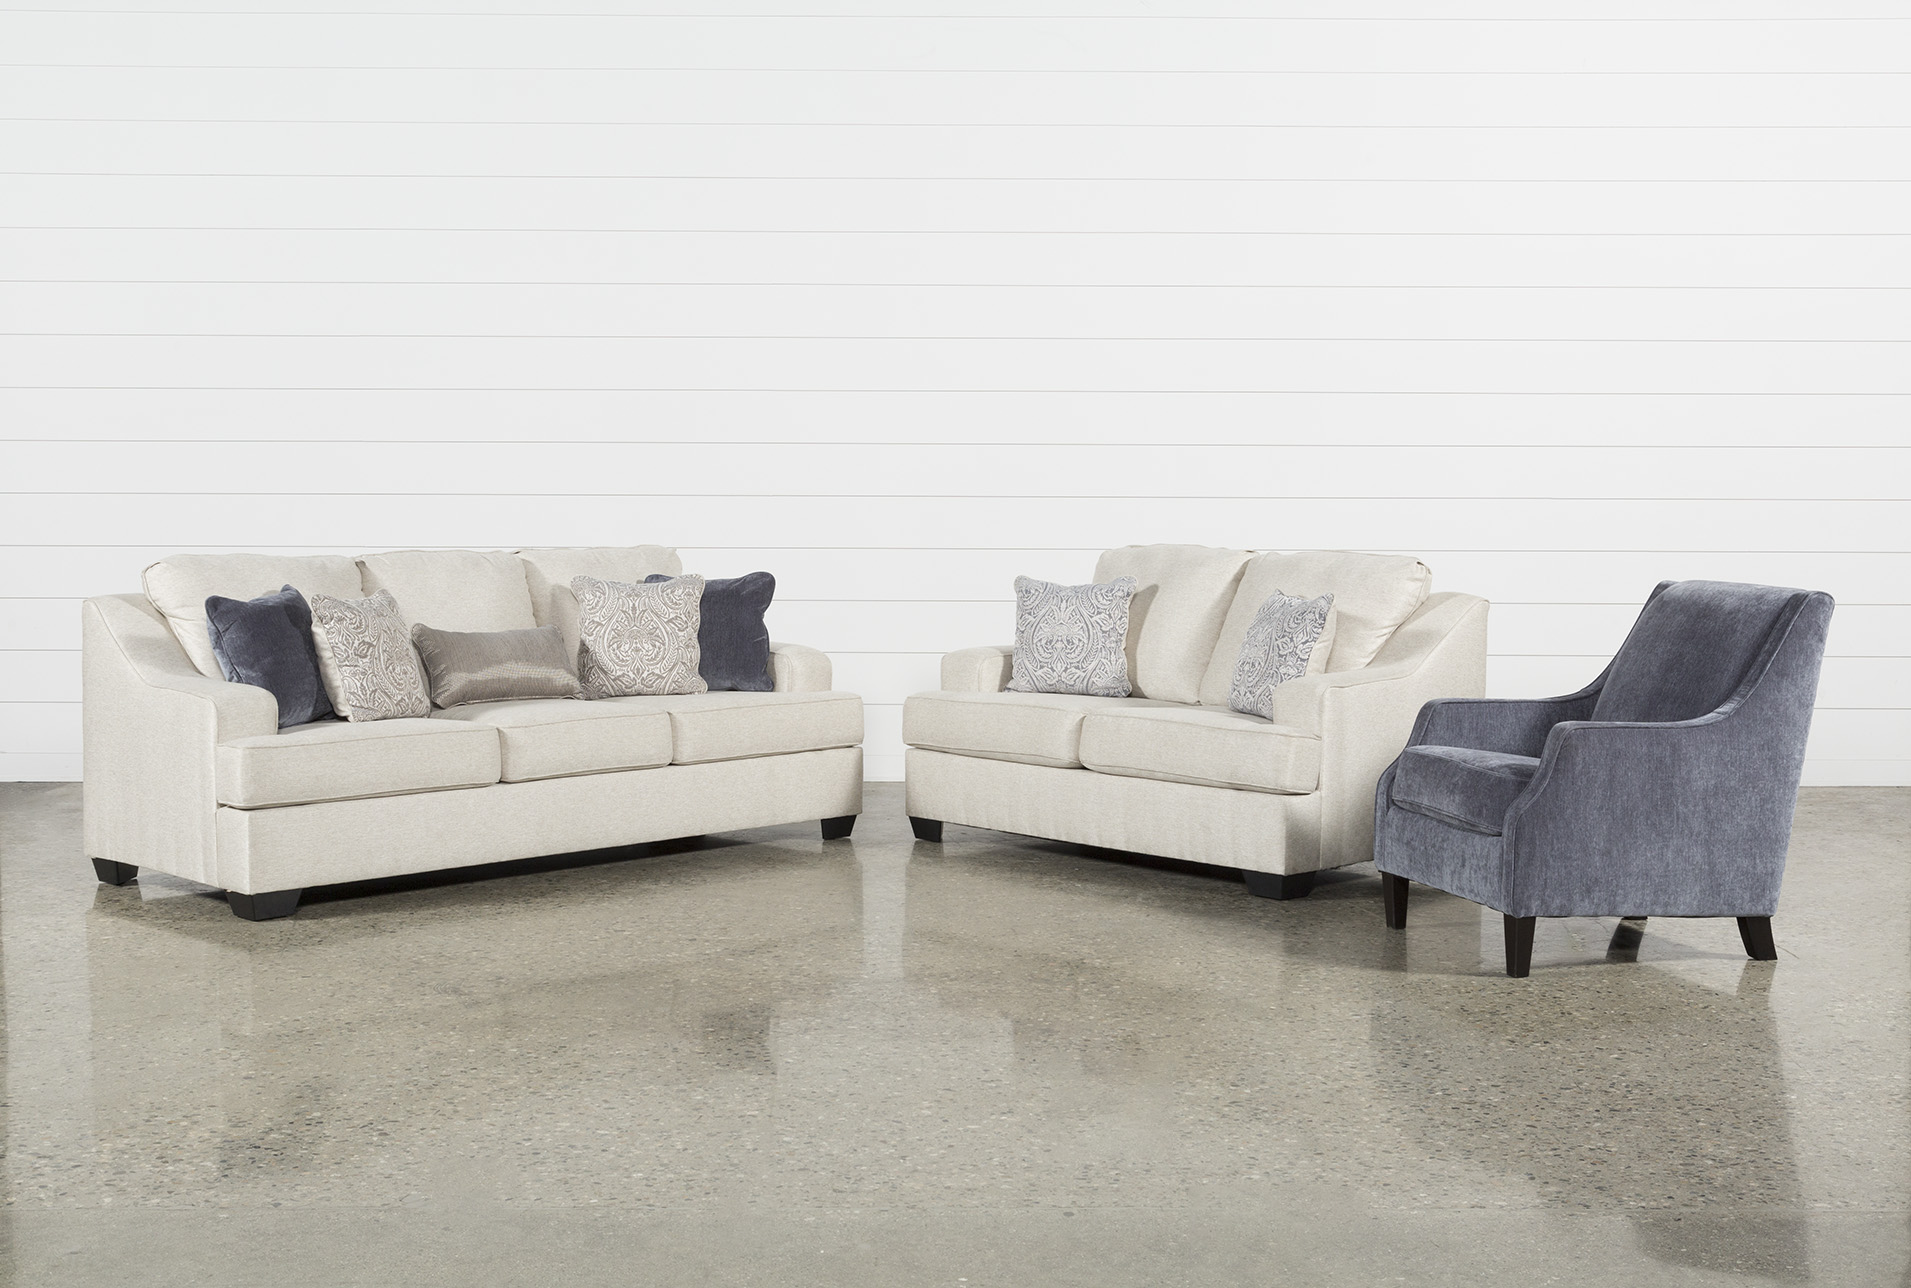 Brumbeck 3 Piece Living Room Set With Accent Chair   360